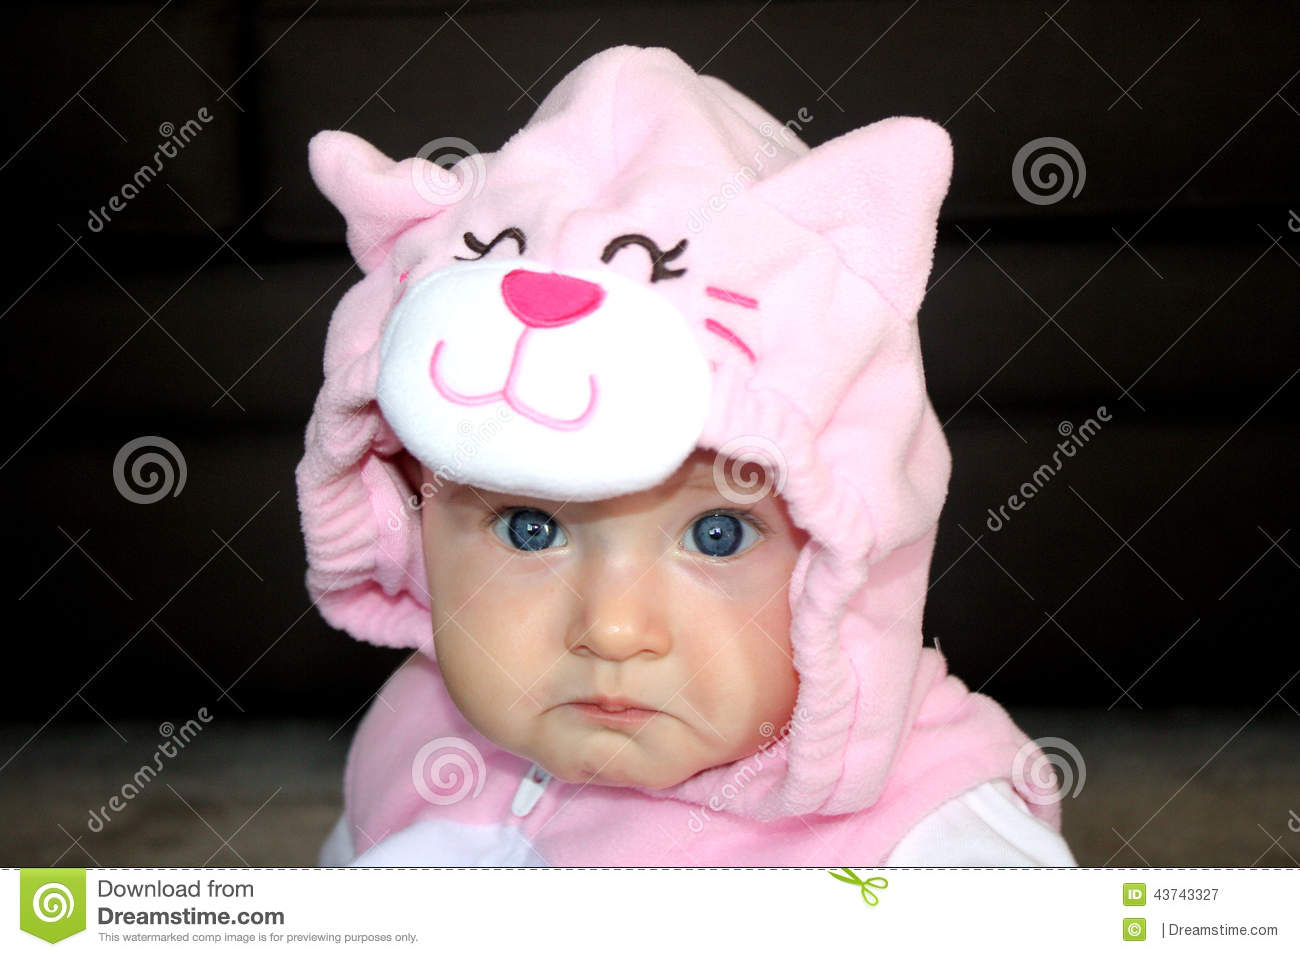 Download Baby girl in cat costume stock image. Image of blue baby - 43743327  sc 1 st  Dreamstime.com & Baby girl in cat costume stock image. Image of blue baby - 43743327